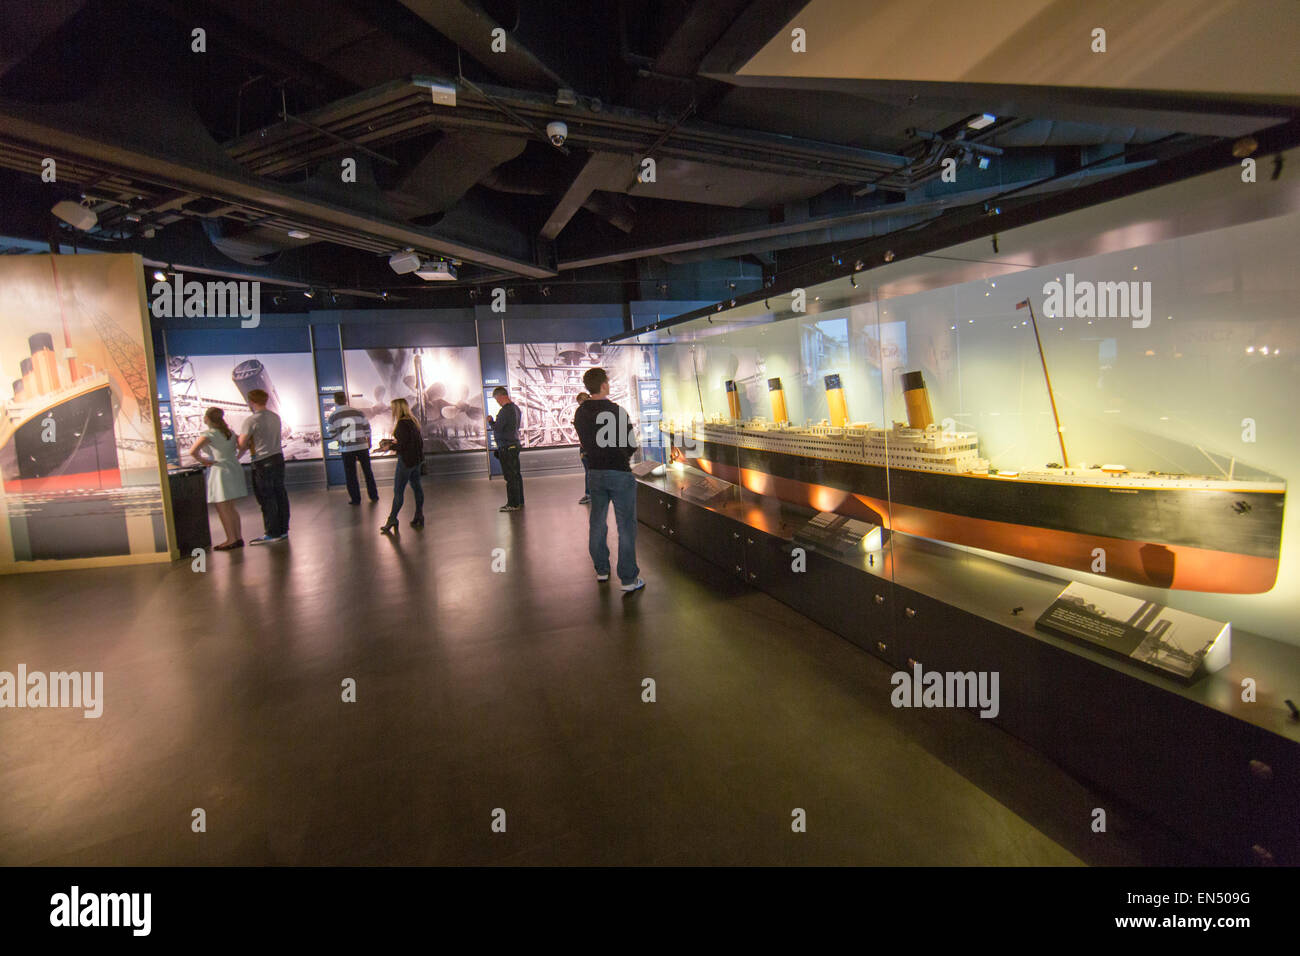 Titanic Belfast is a $165 million visitor attraction centre - Stock Image